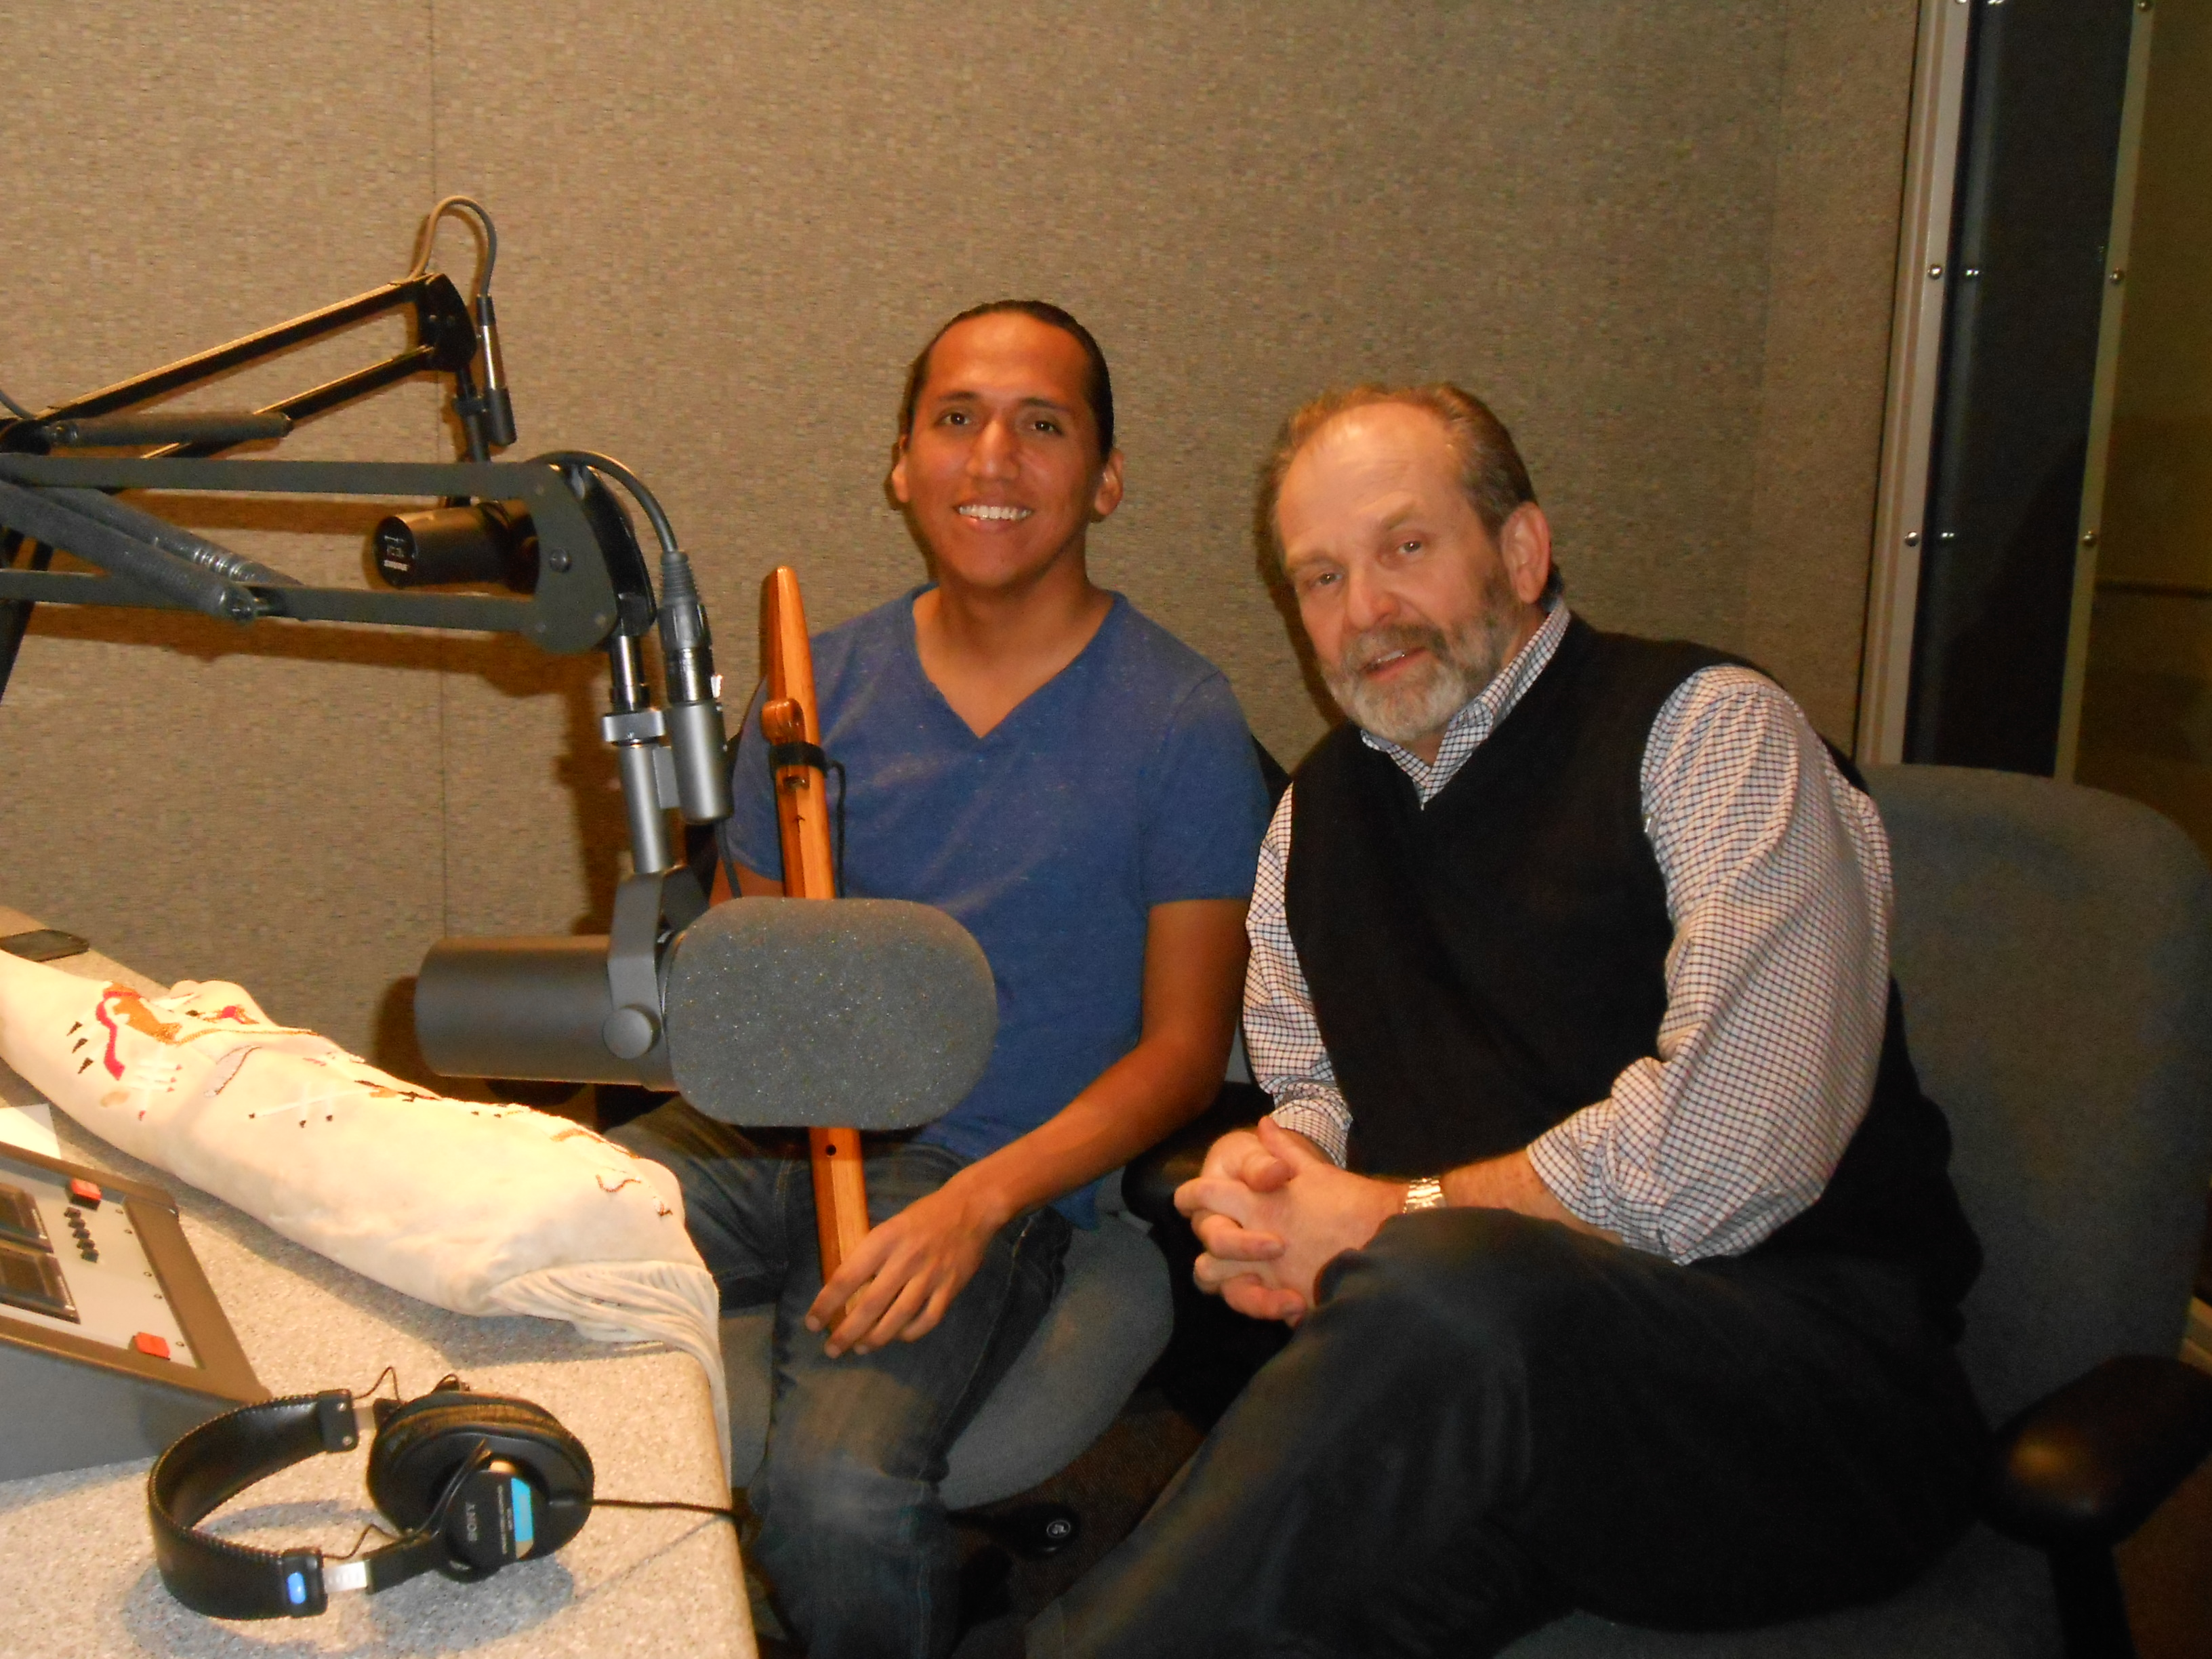 tony chat sites Ben brantley and jesse green, the chief theater critics for the new york times, along with lorne manly, an arts editor, discussed the 2018 tony awards.